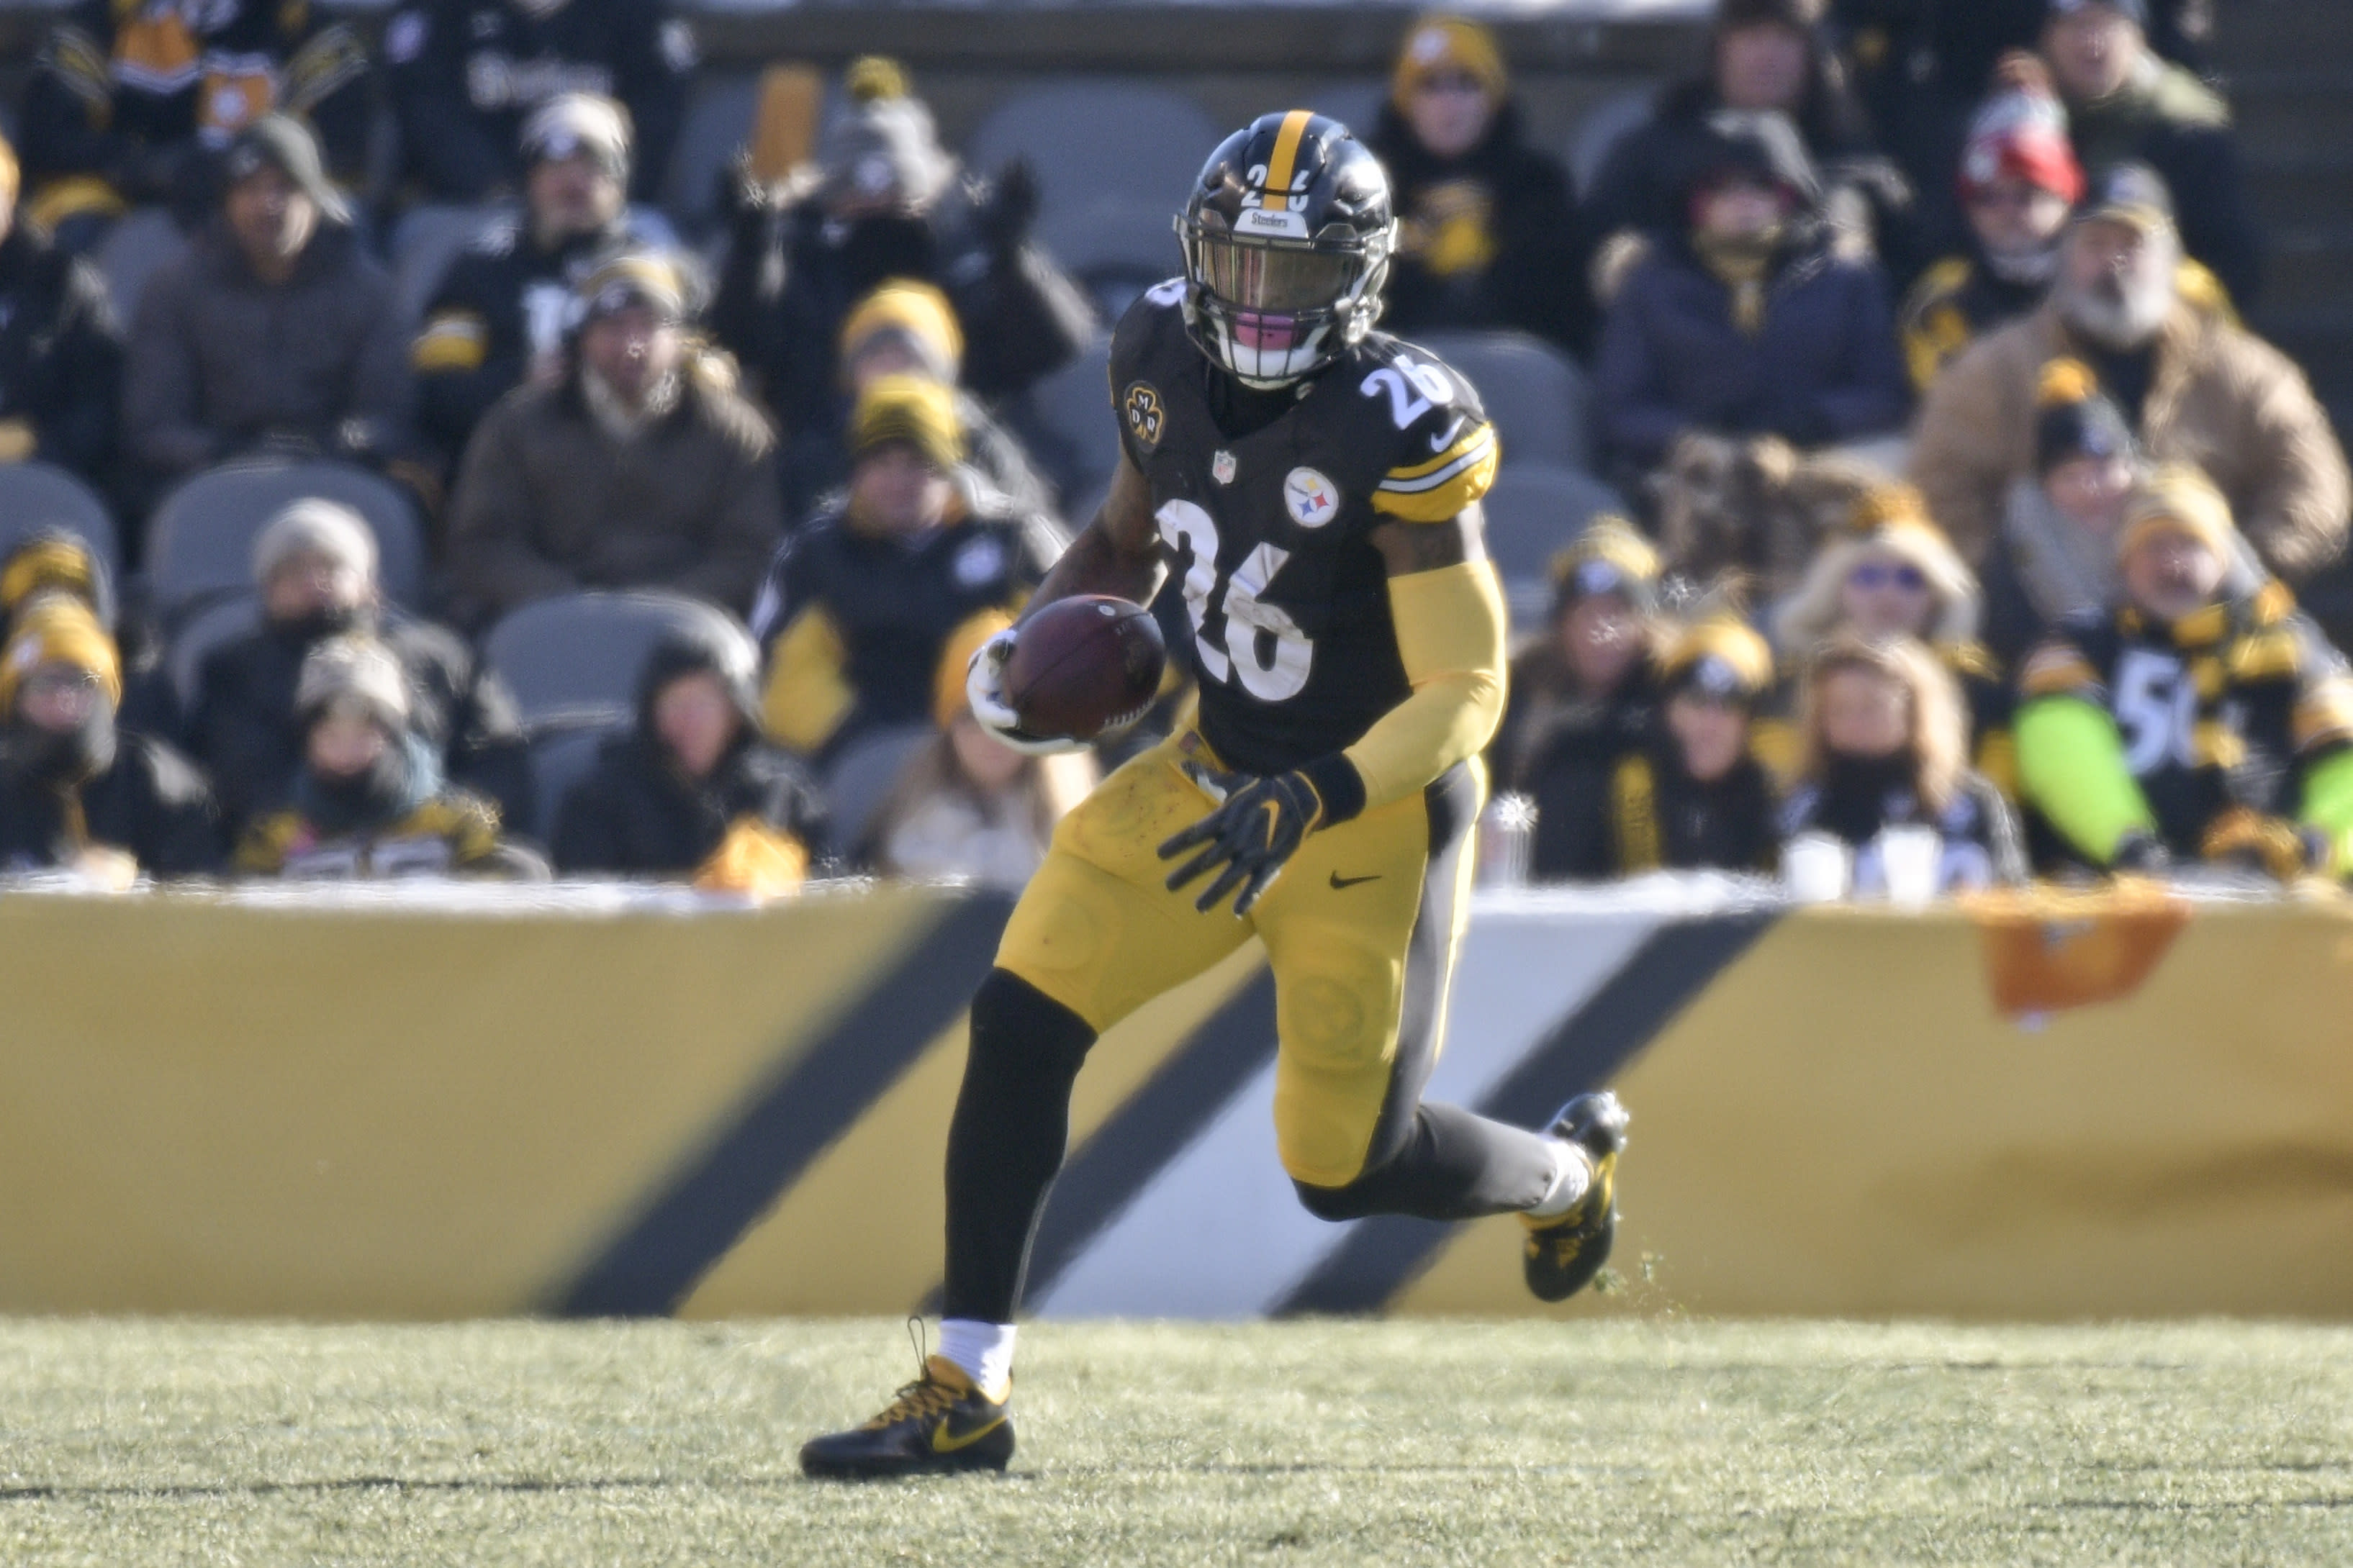 Le'Veon Bell missed almost all of Saturday walk-through practice, report says